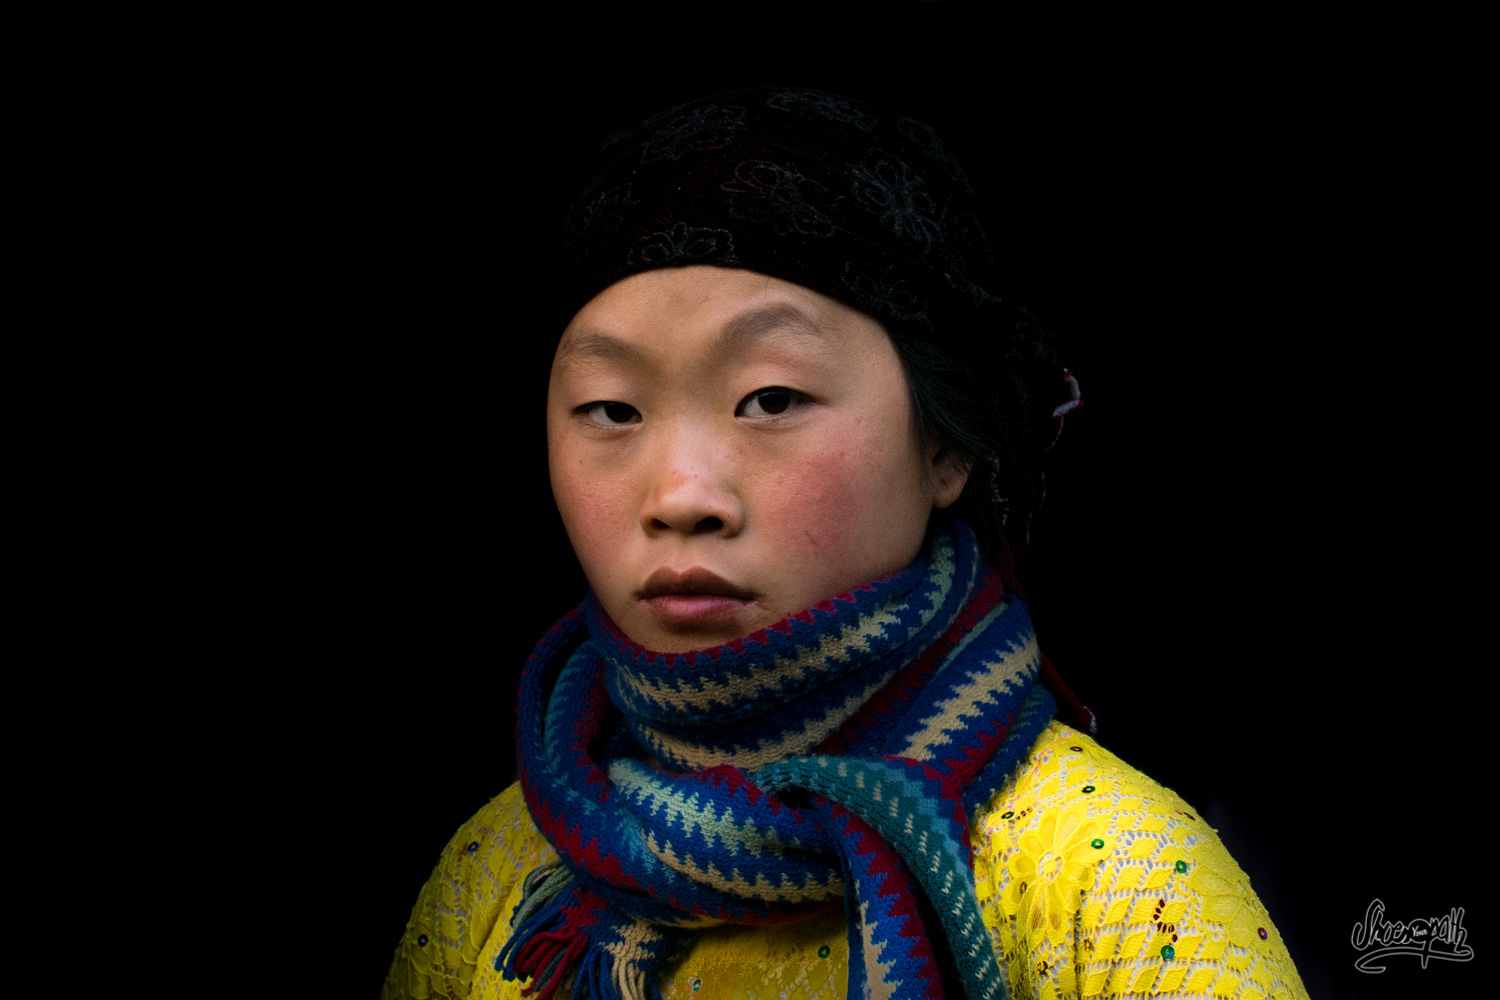 A Hmong woman in the darkness